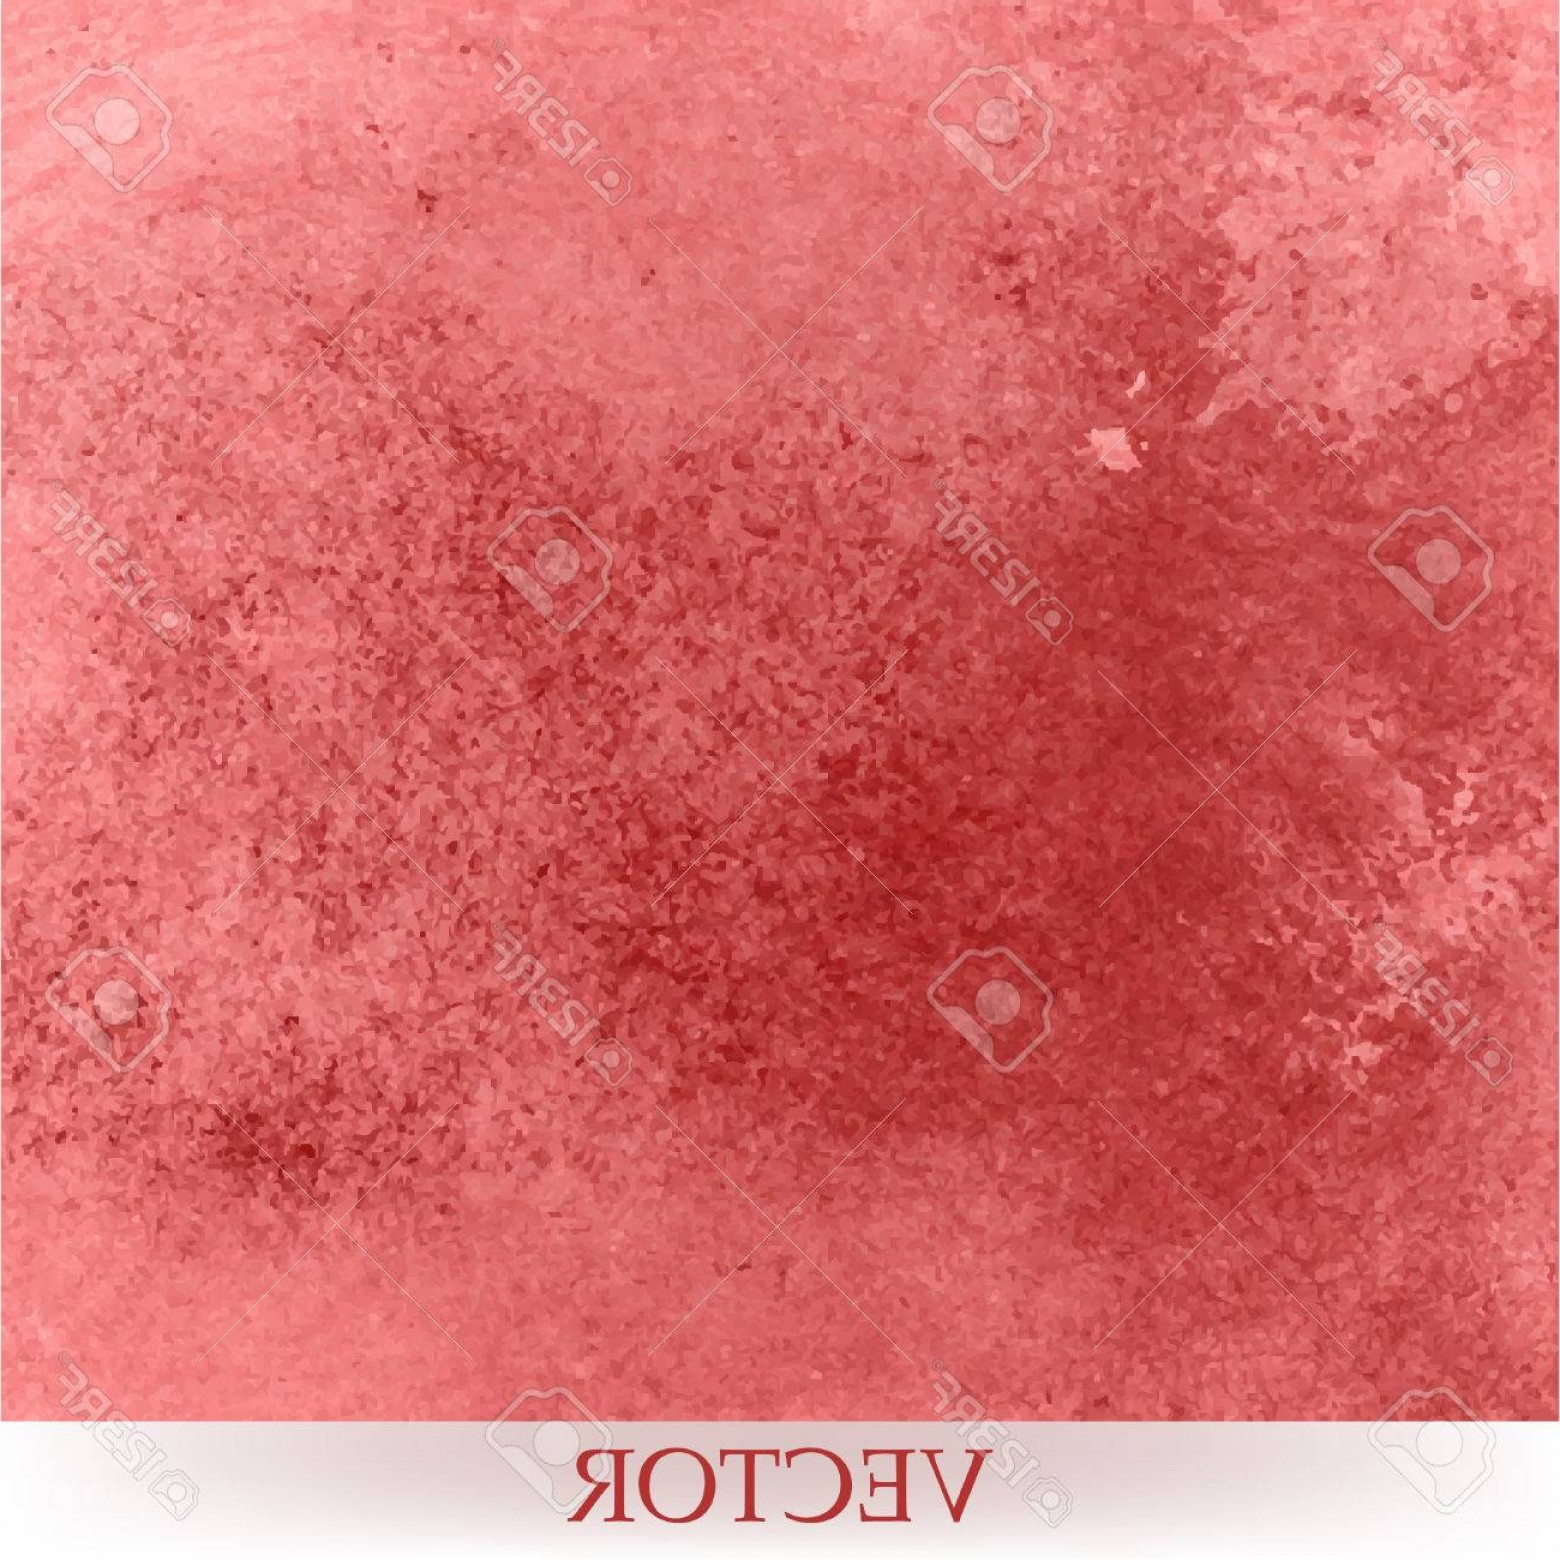 Distressed Red Background Vector: Photostock Vector Red Grunge Background Vector With Texture Vintage Dull Red Distressed Paper